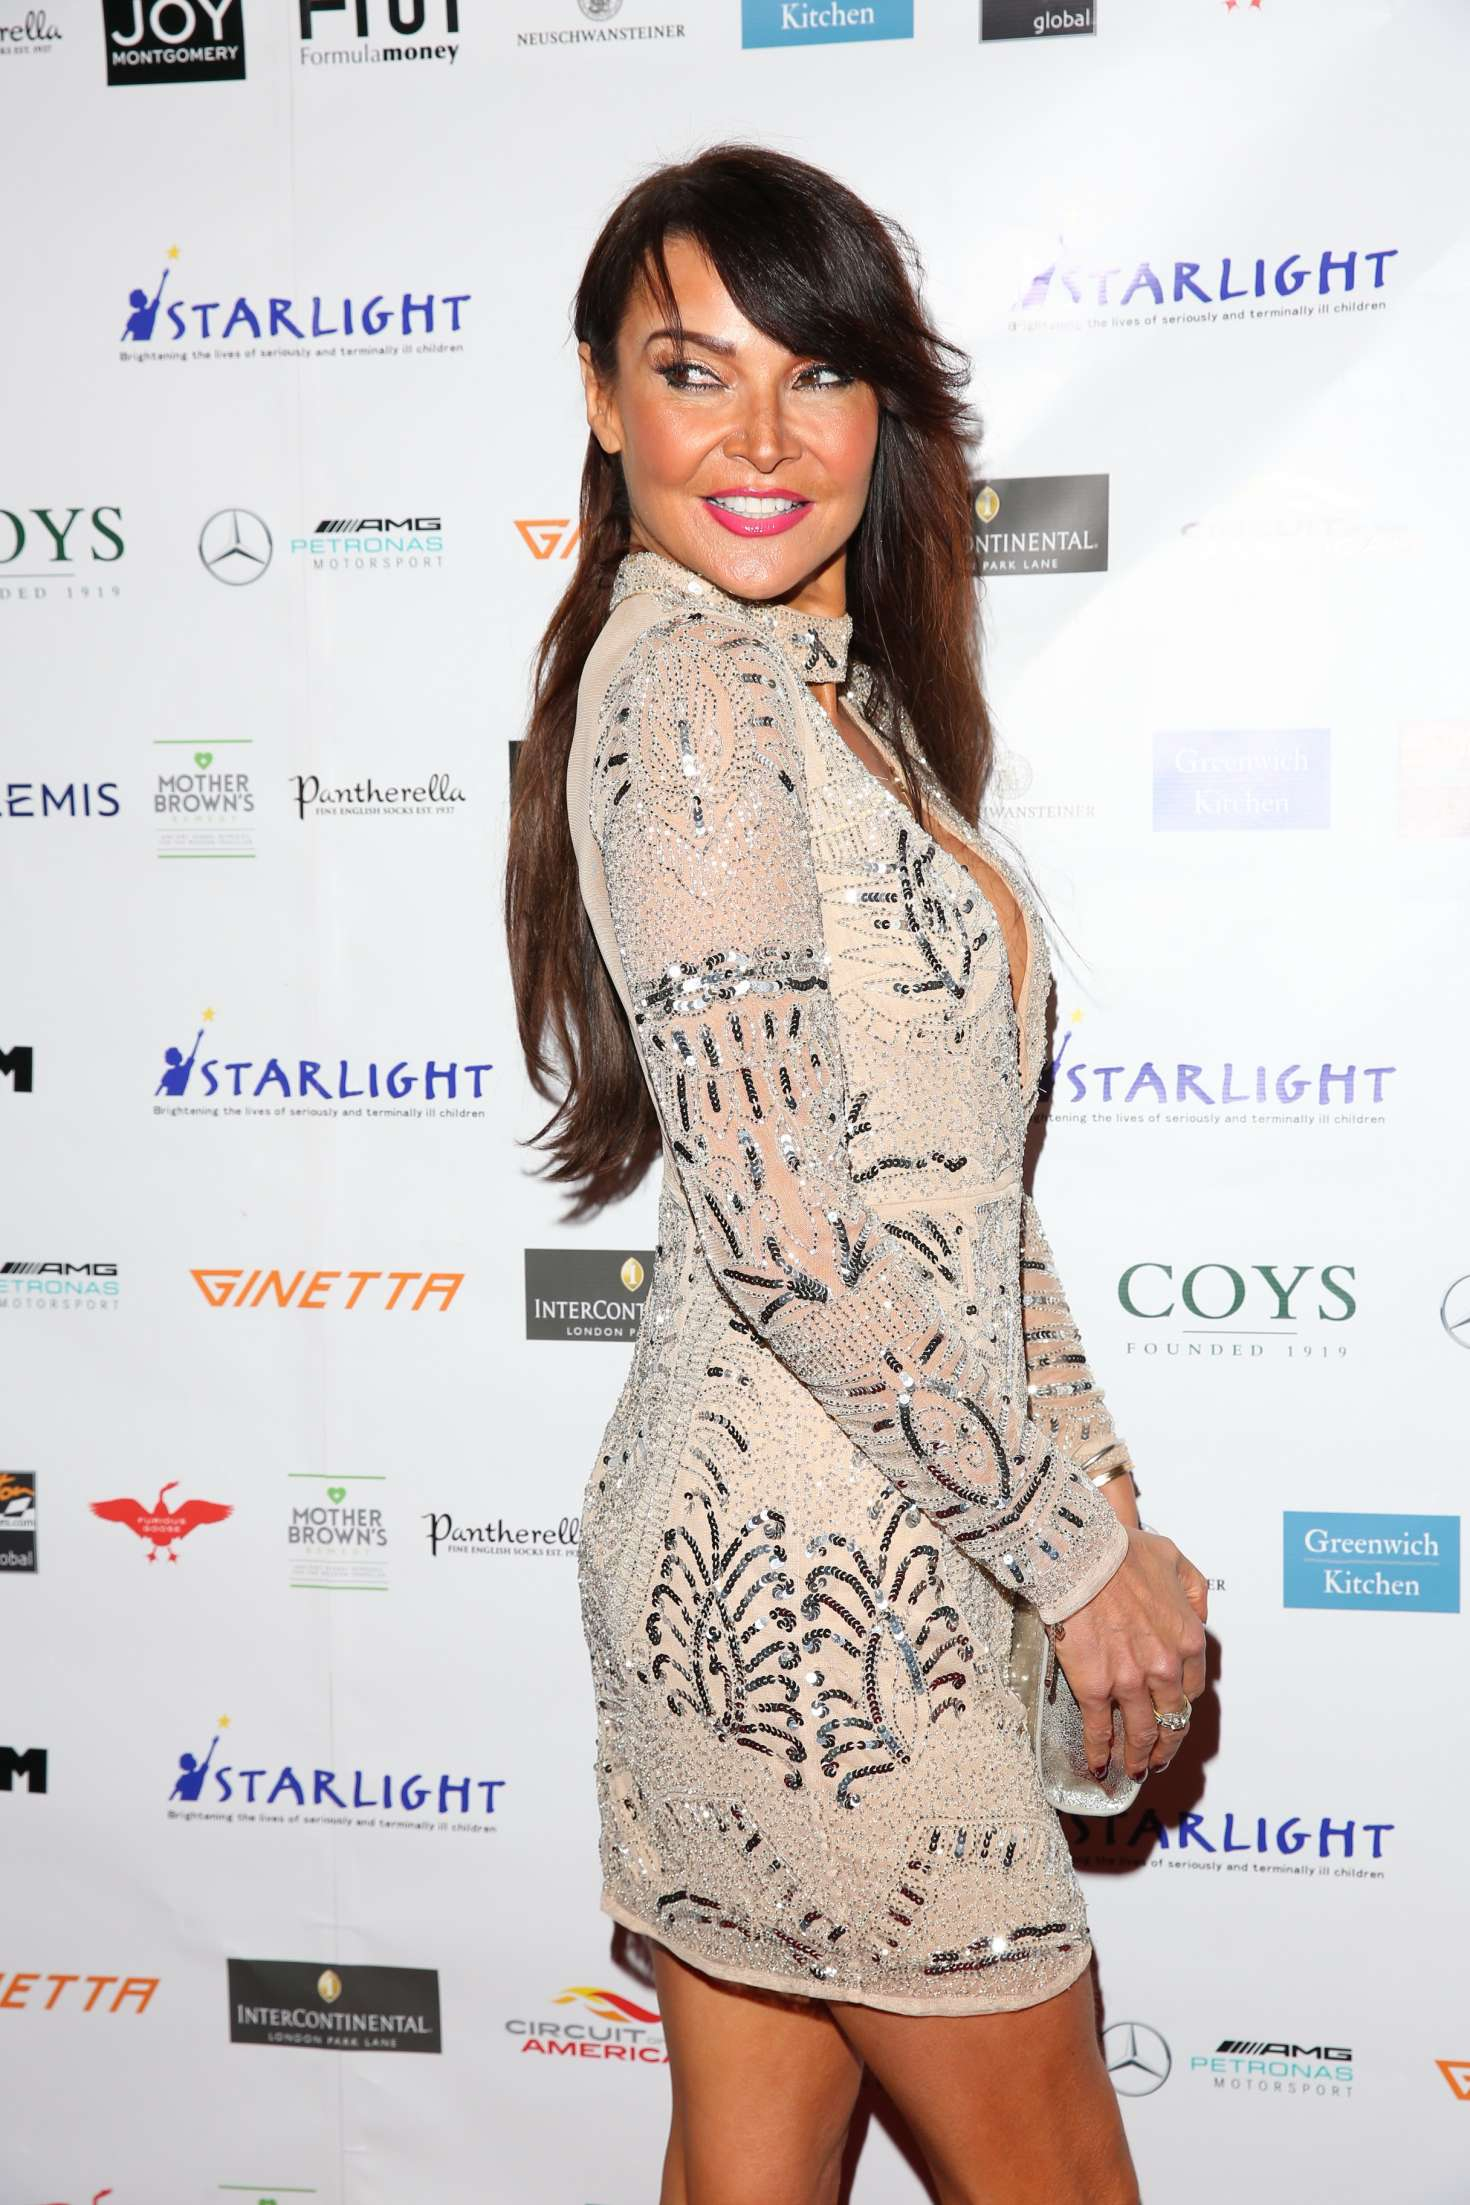 Lizzie cundy at zoom auction charity gala in london naked (35 pics)